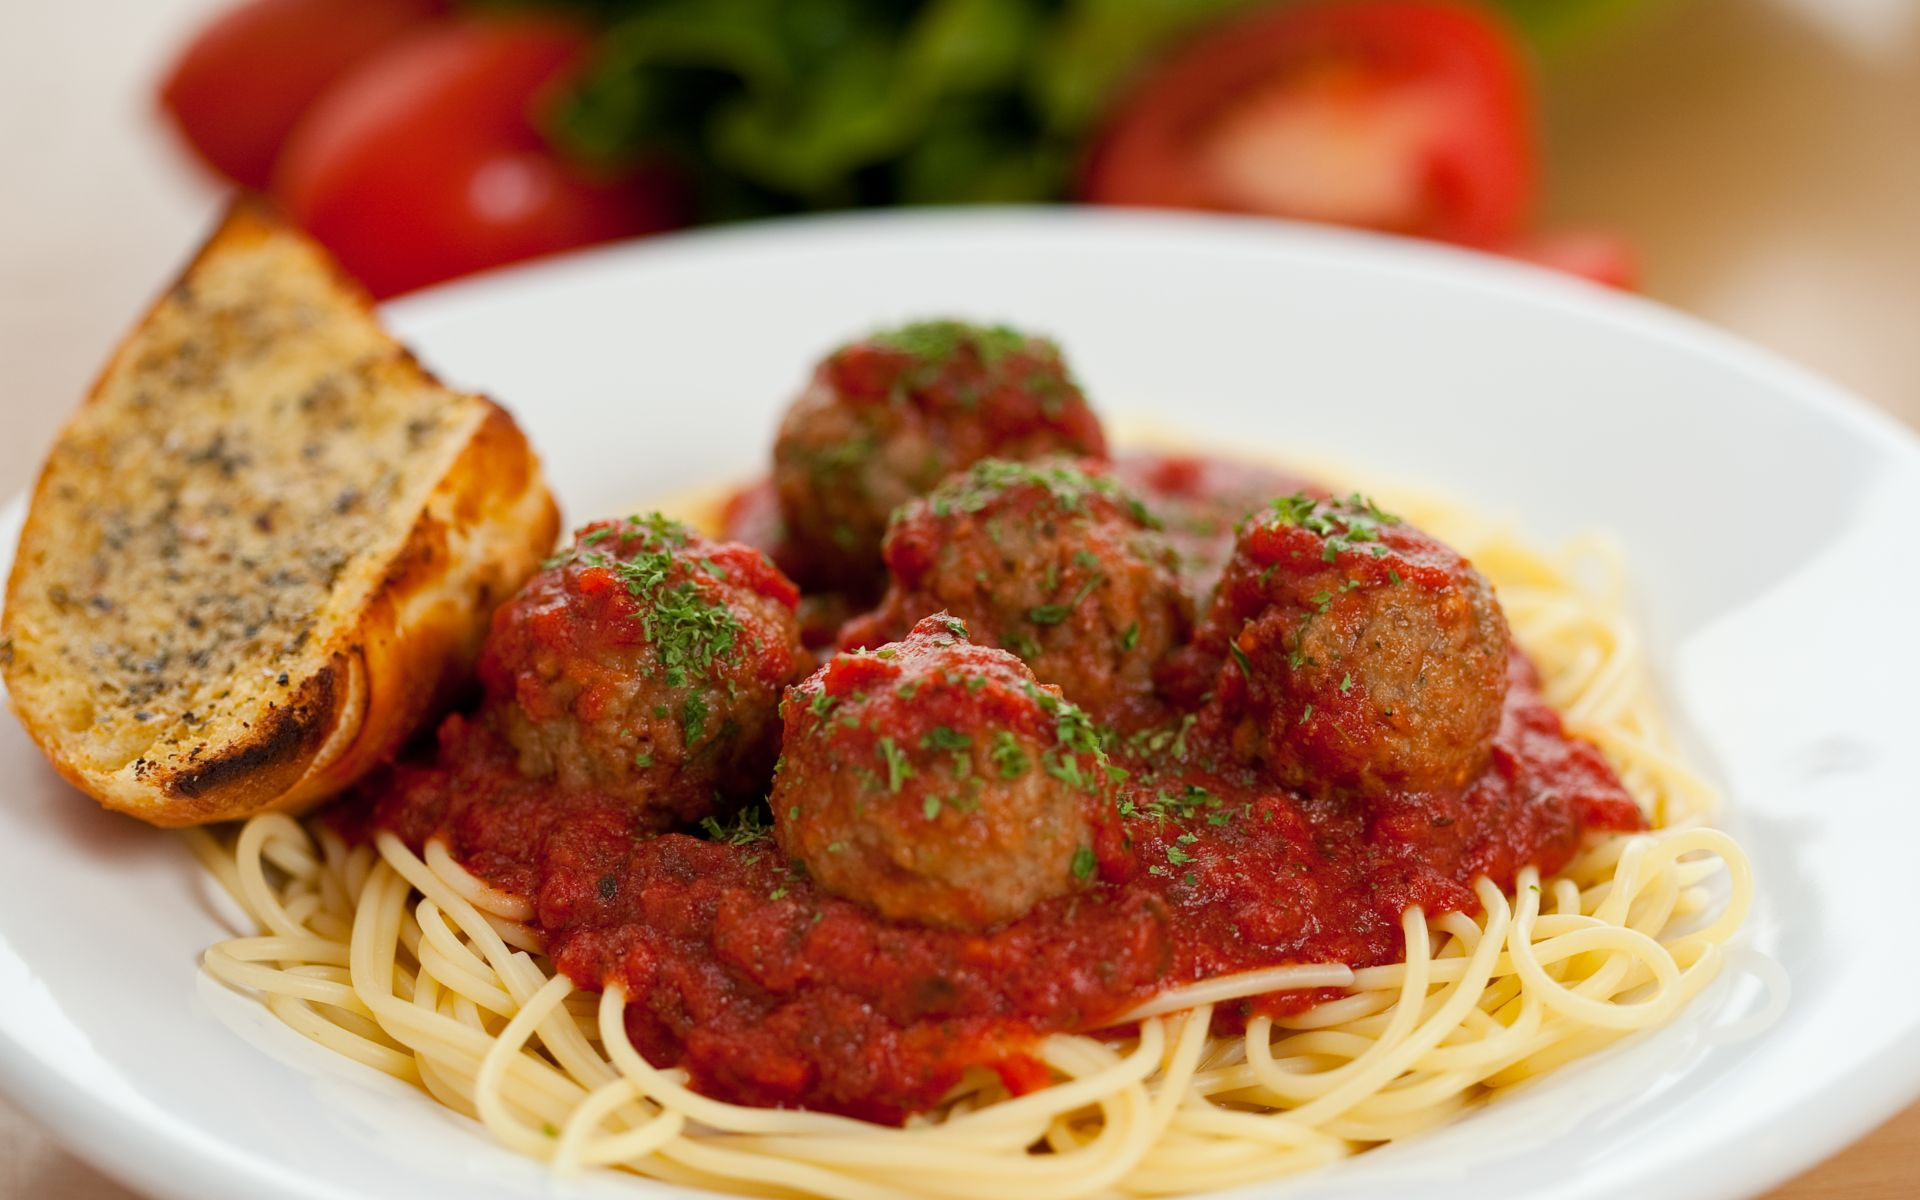 Spaghetti and meatballs in a bowl with garlic bread